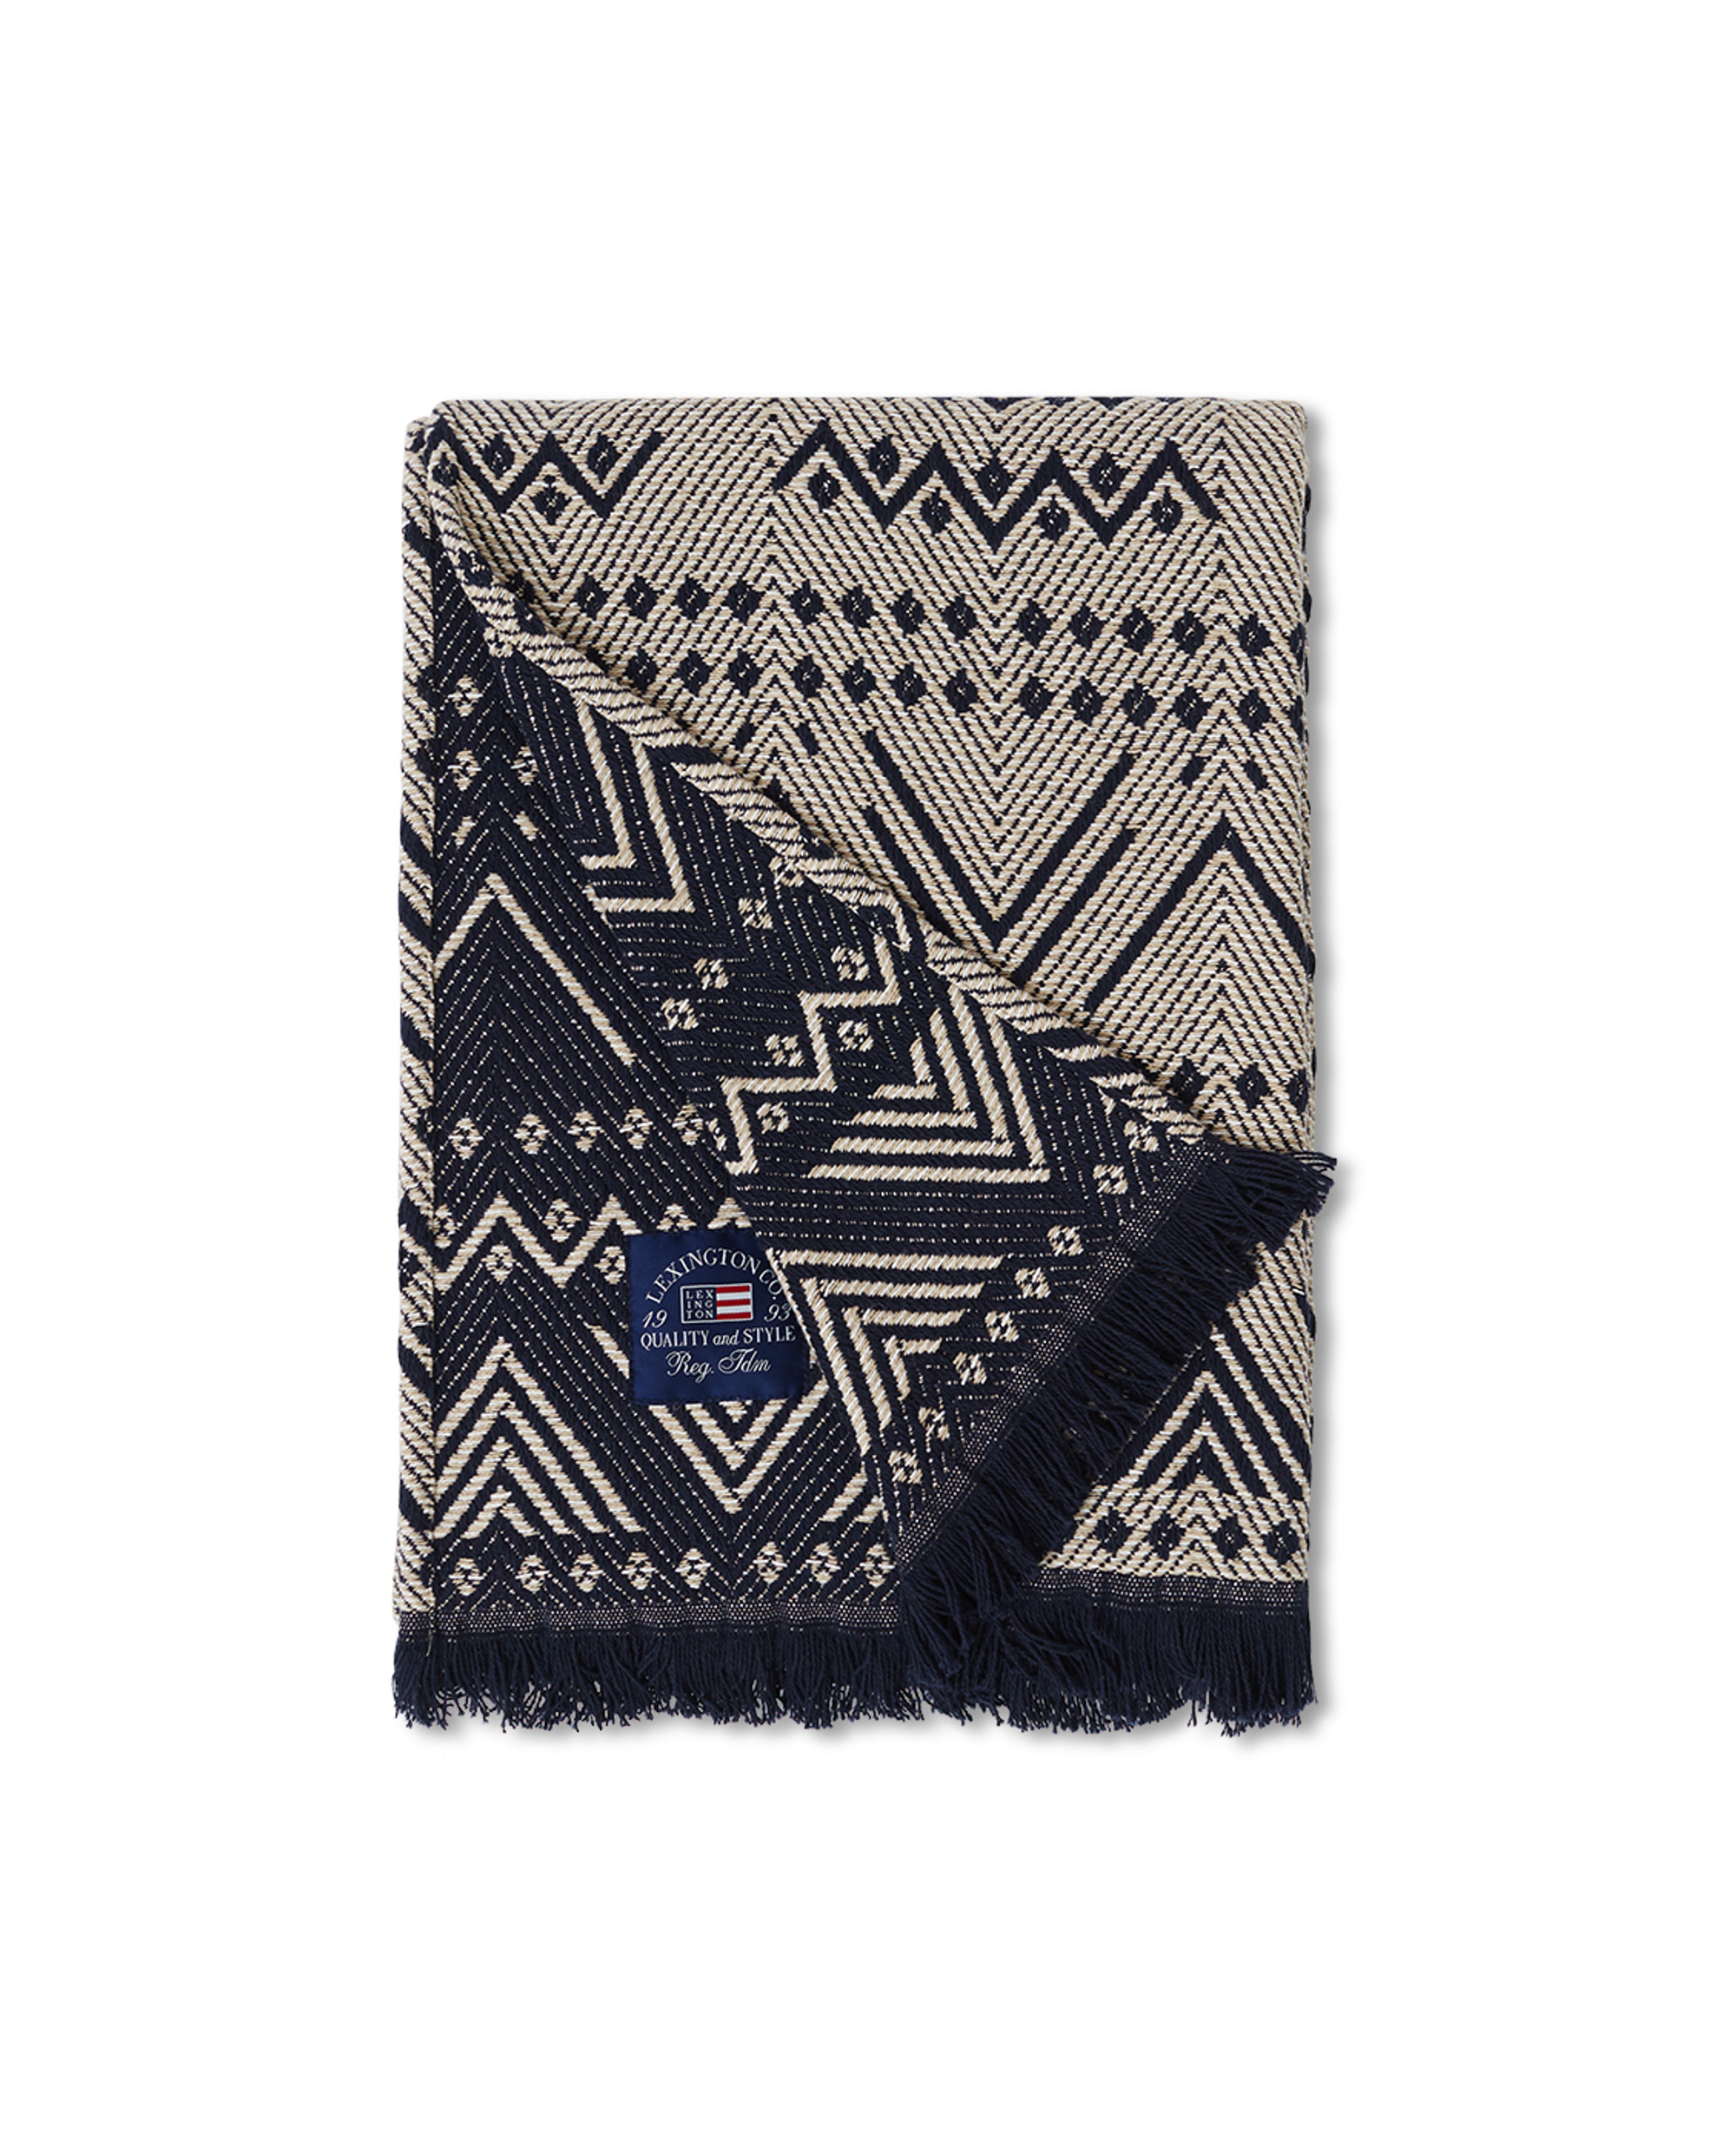 Graphic Recycled Cotton Throw, Beige/Dark Blue